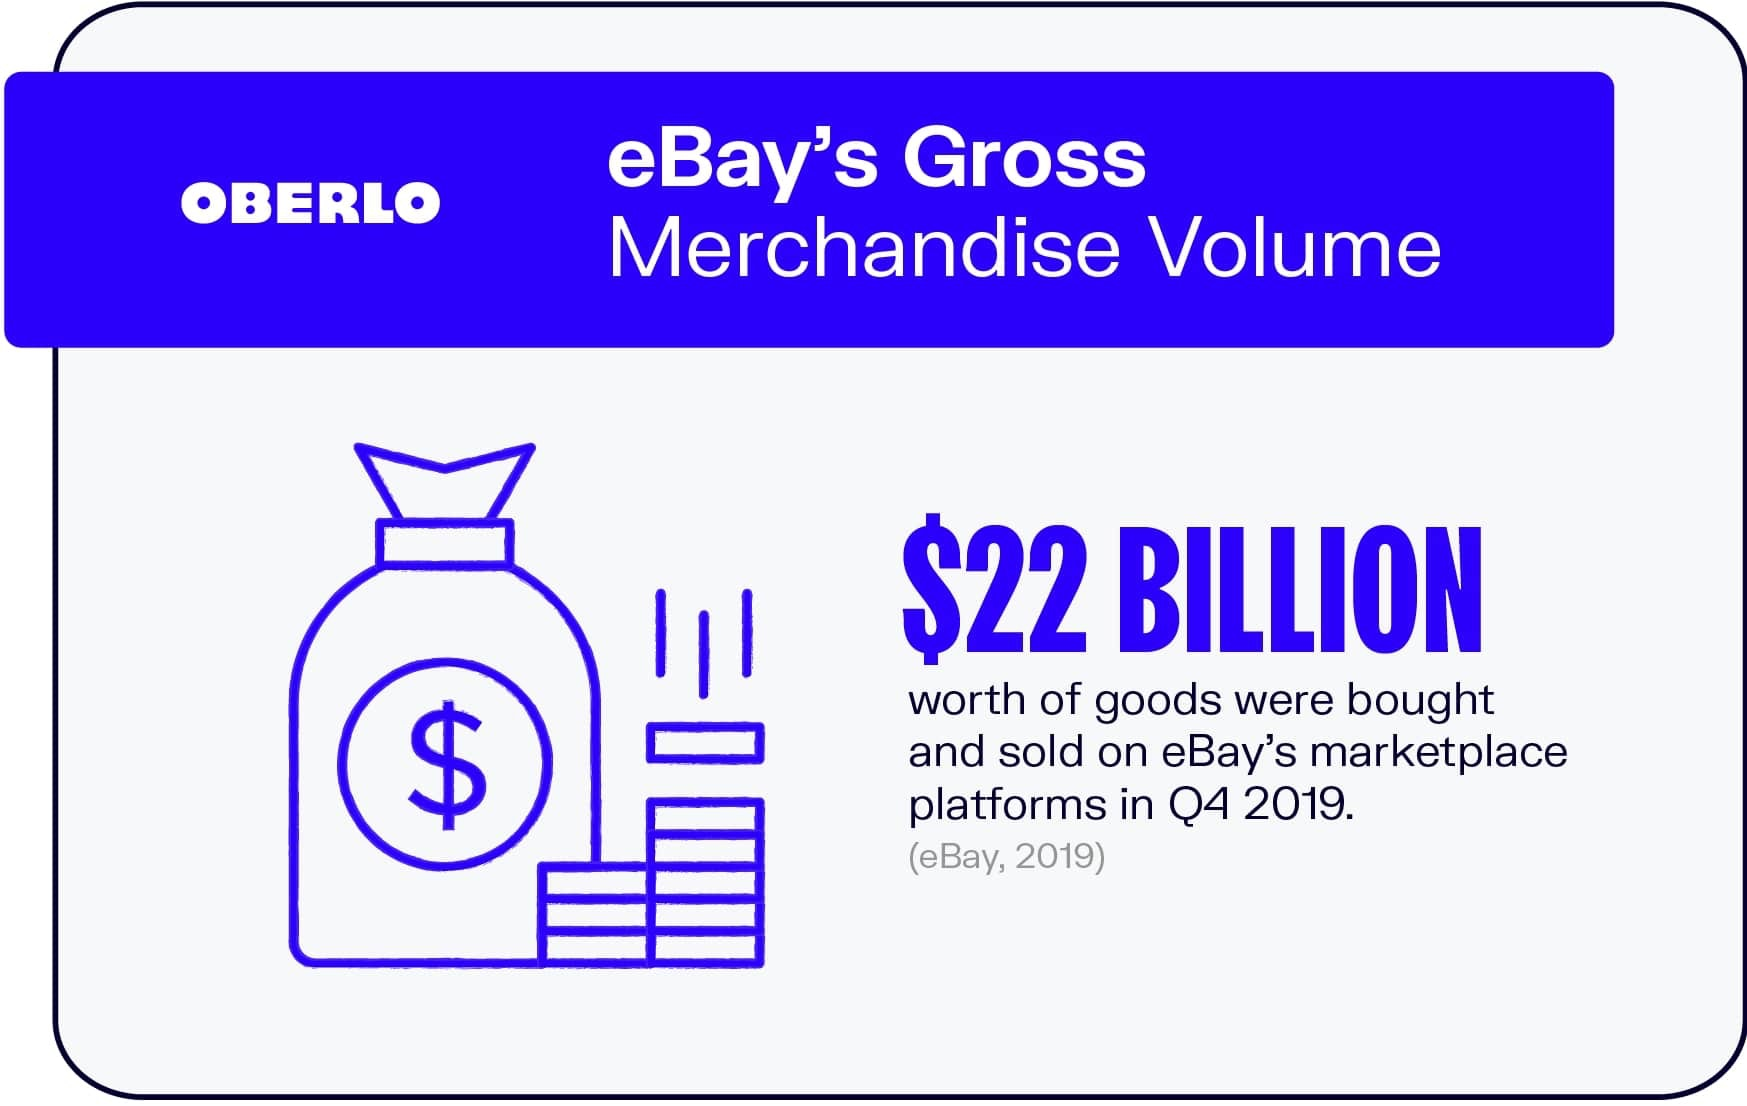 eBay's Gross Merchandise Volume